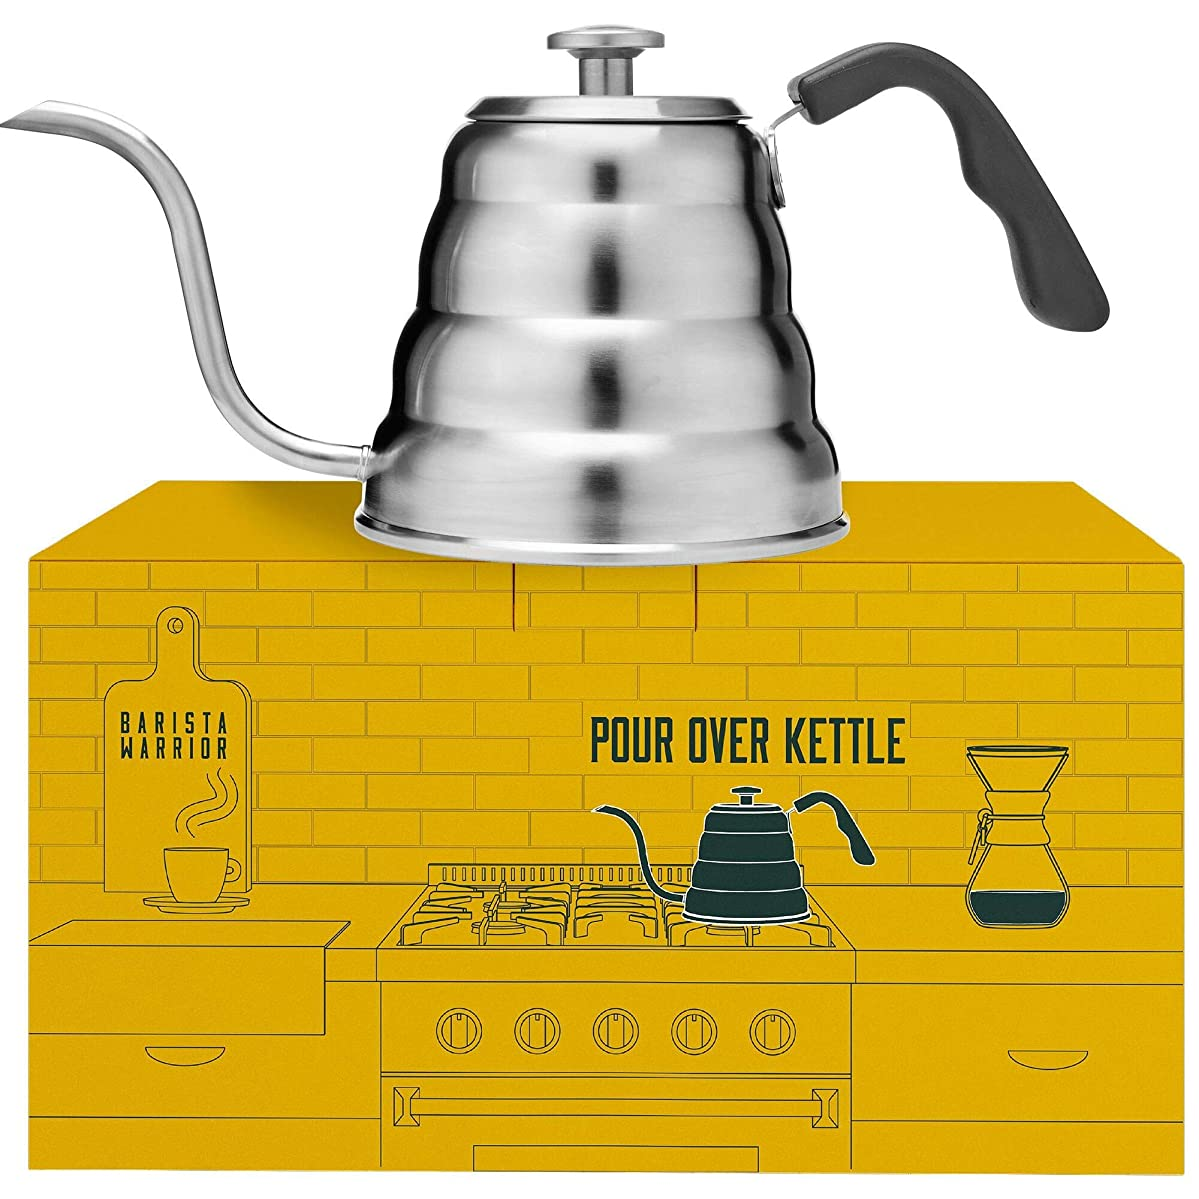 Pour Over Coffee Kettle with Thermometer for Exact Temperature - Gooseneck Pour Over Kettle for Drip Coffee and Tea (1.2 Liter | 40 fl oz) (Stainless Steel)